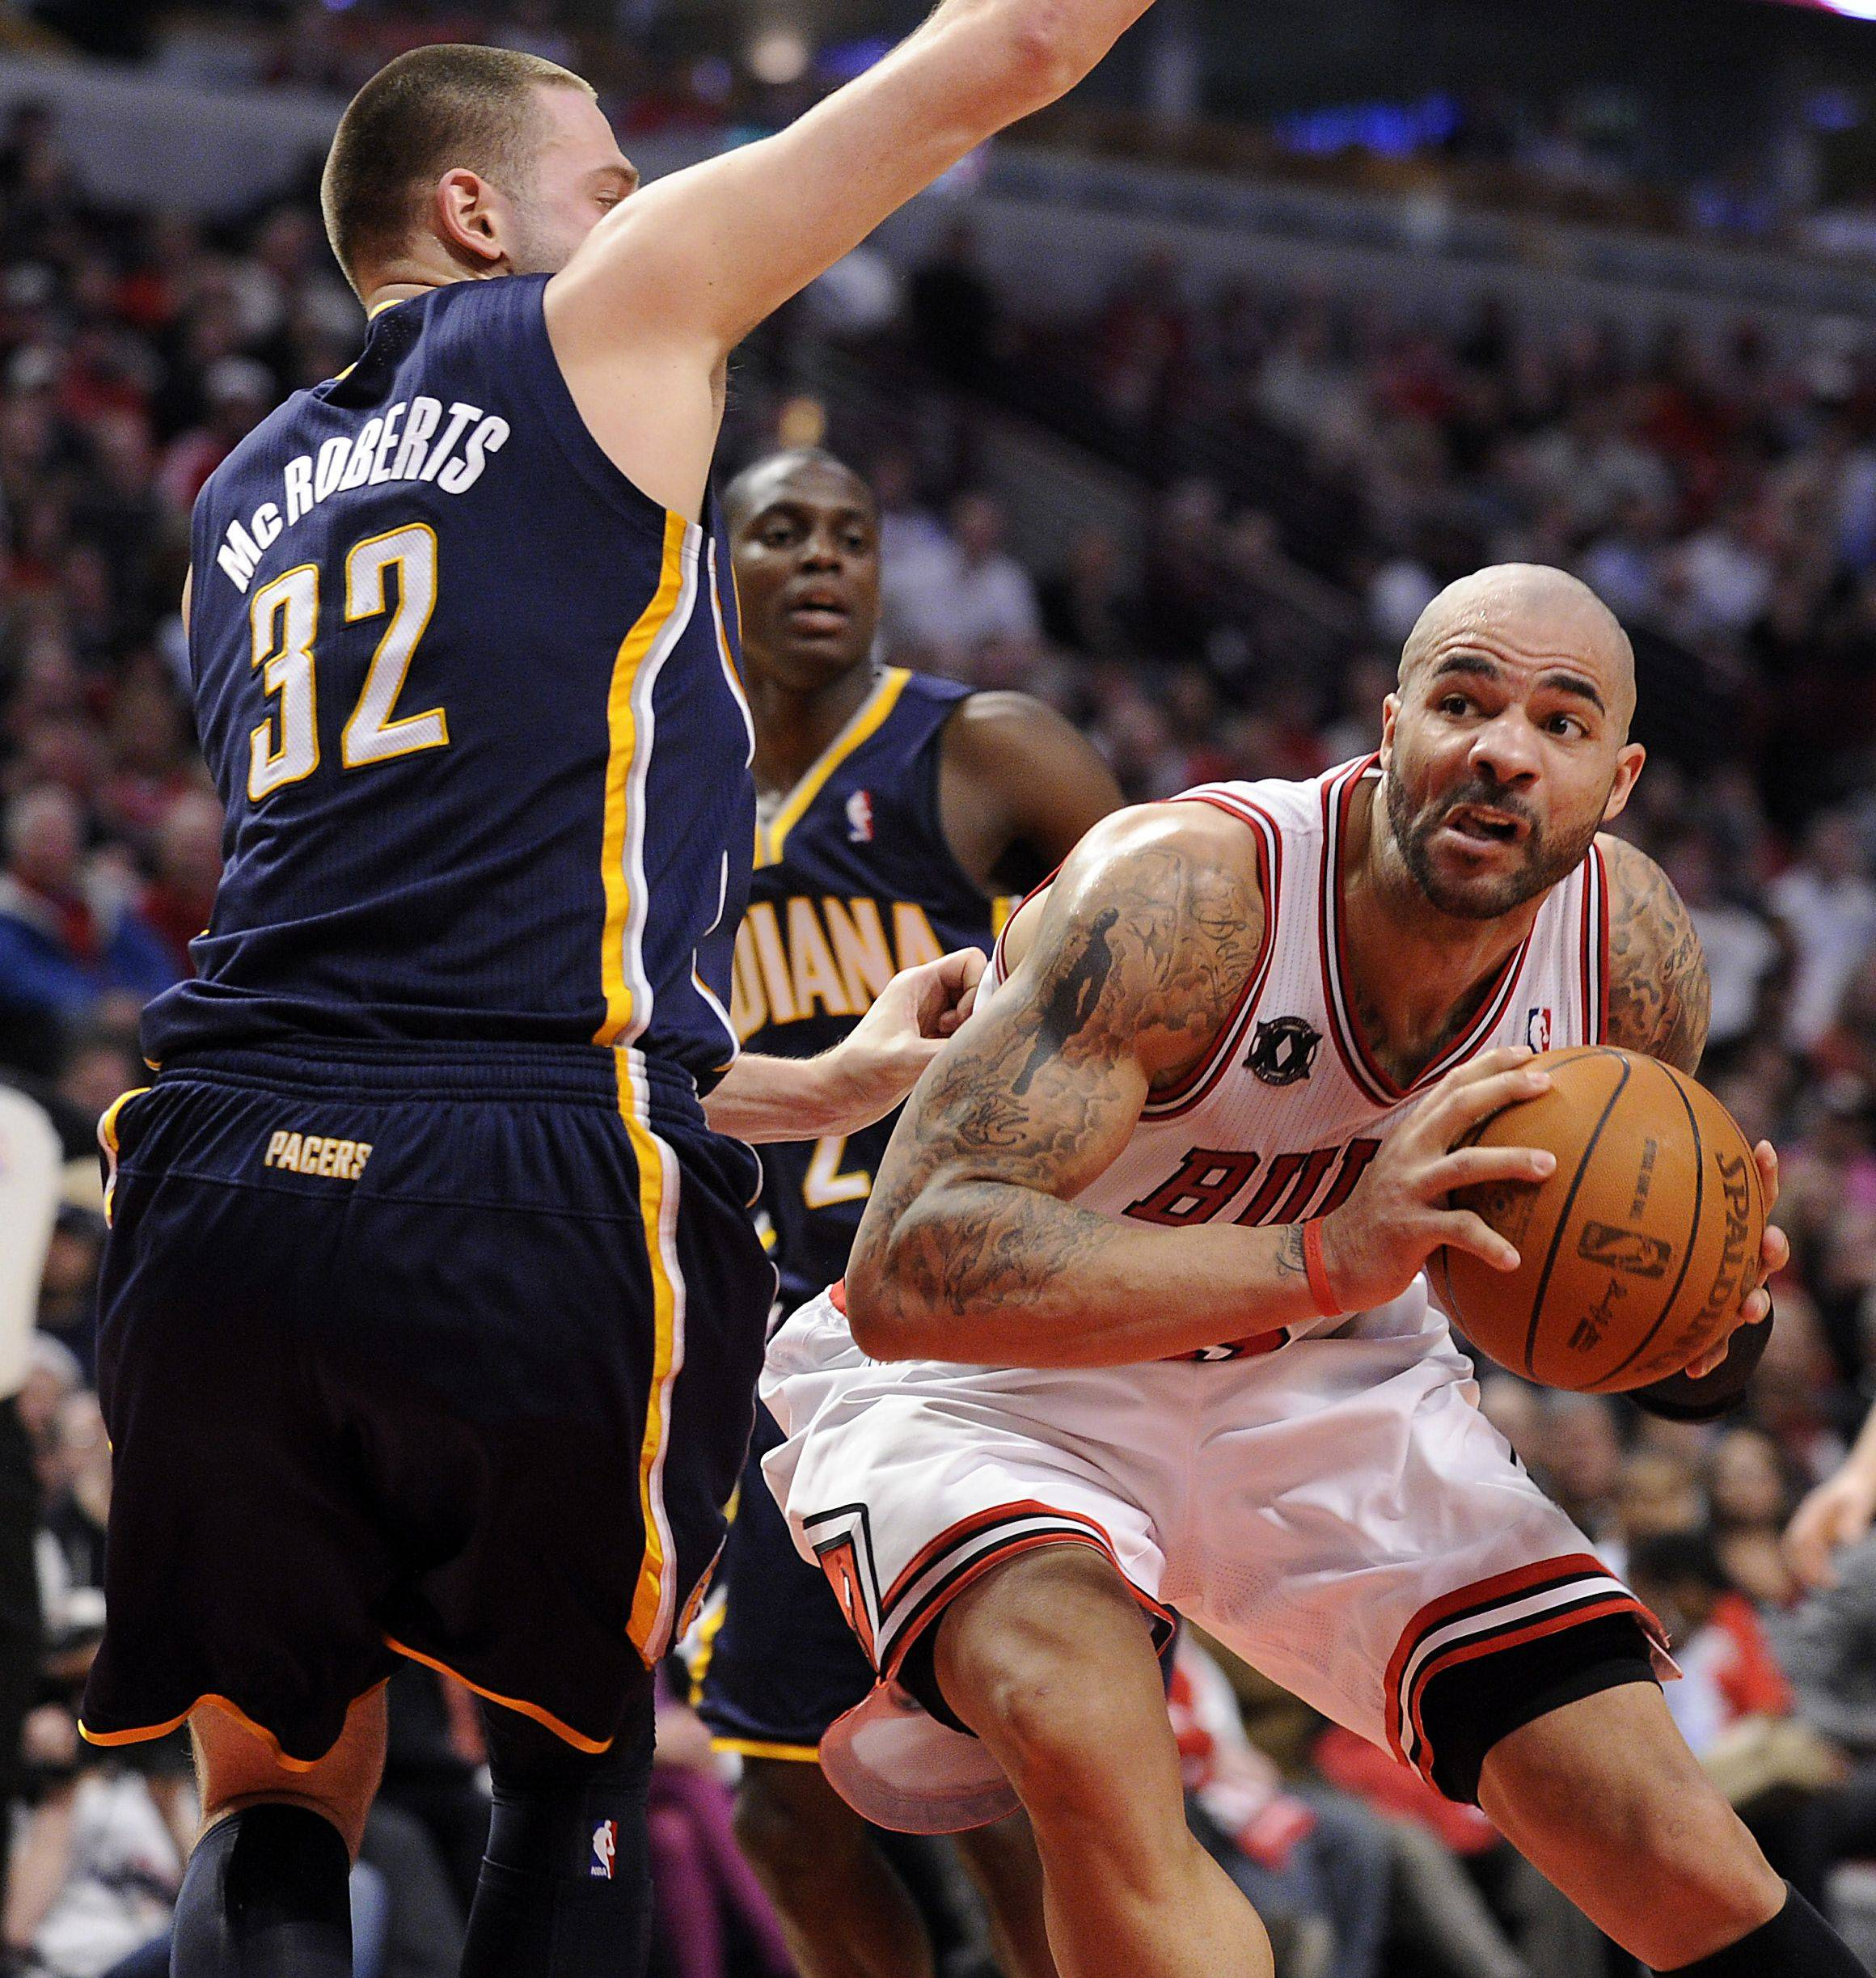 Boozer rebounds nicely with a solid Game 2 performance